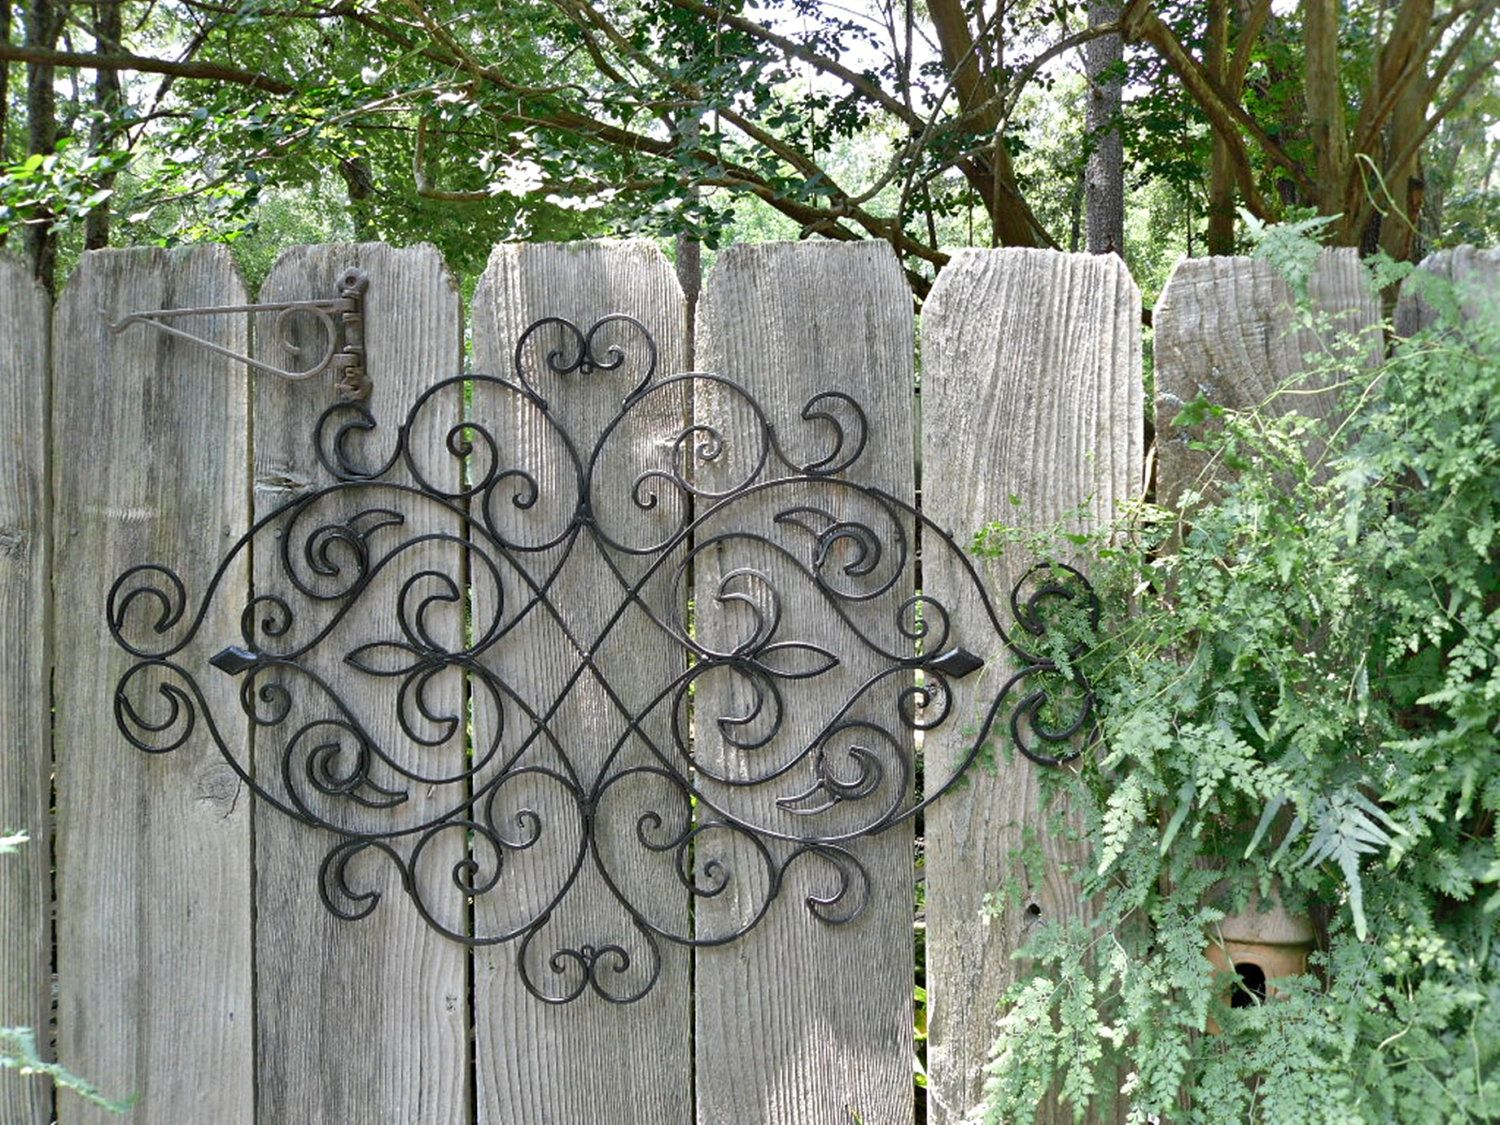 Large Wrought Iron Outdoor Wall Decor Google Image Result For Httpimg3.etsystatic00005989046